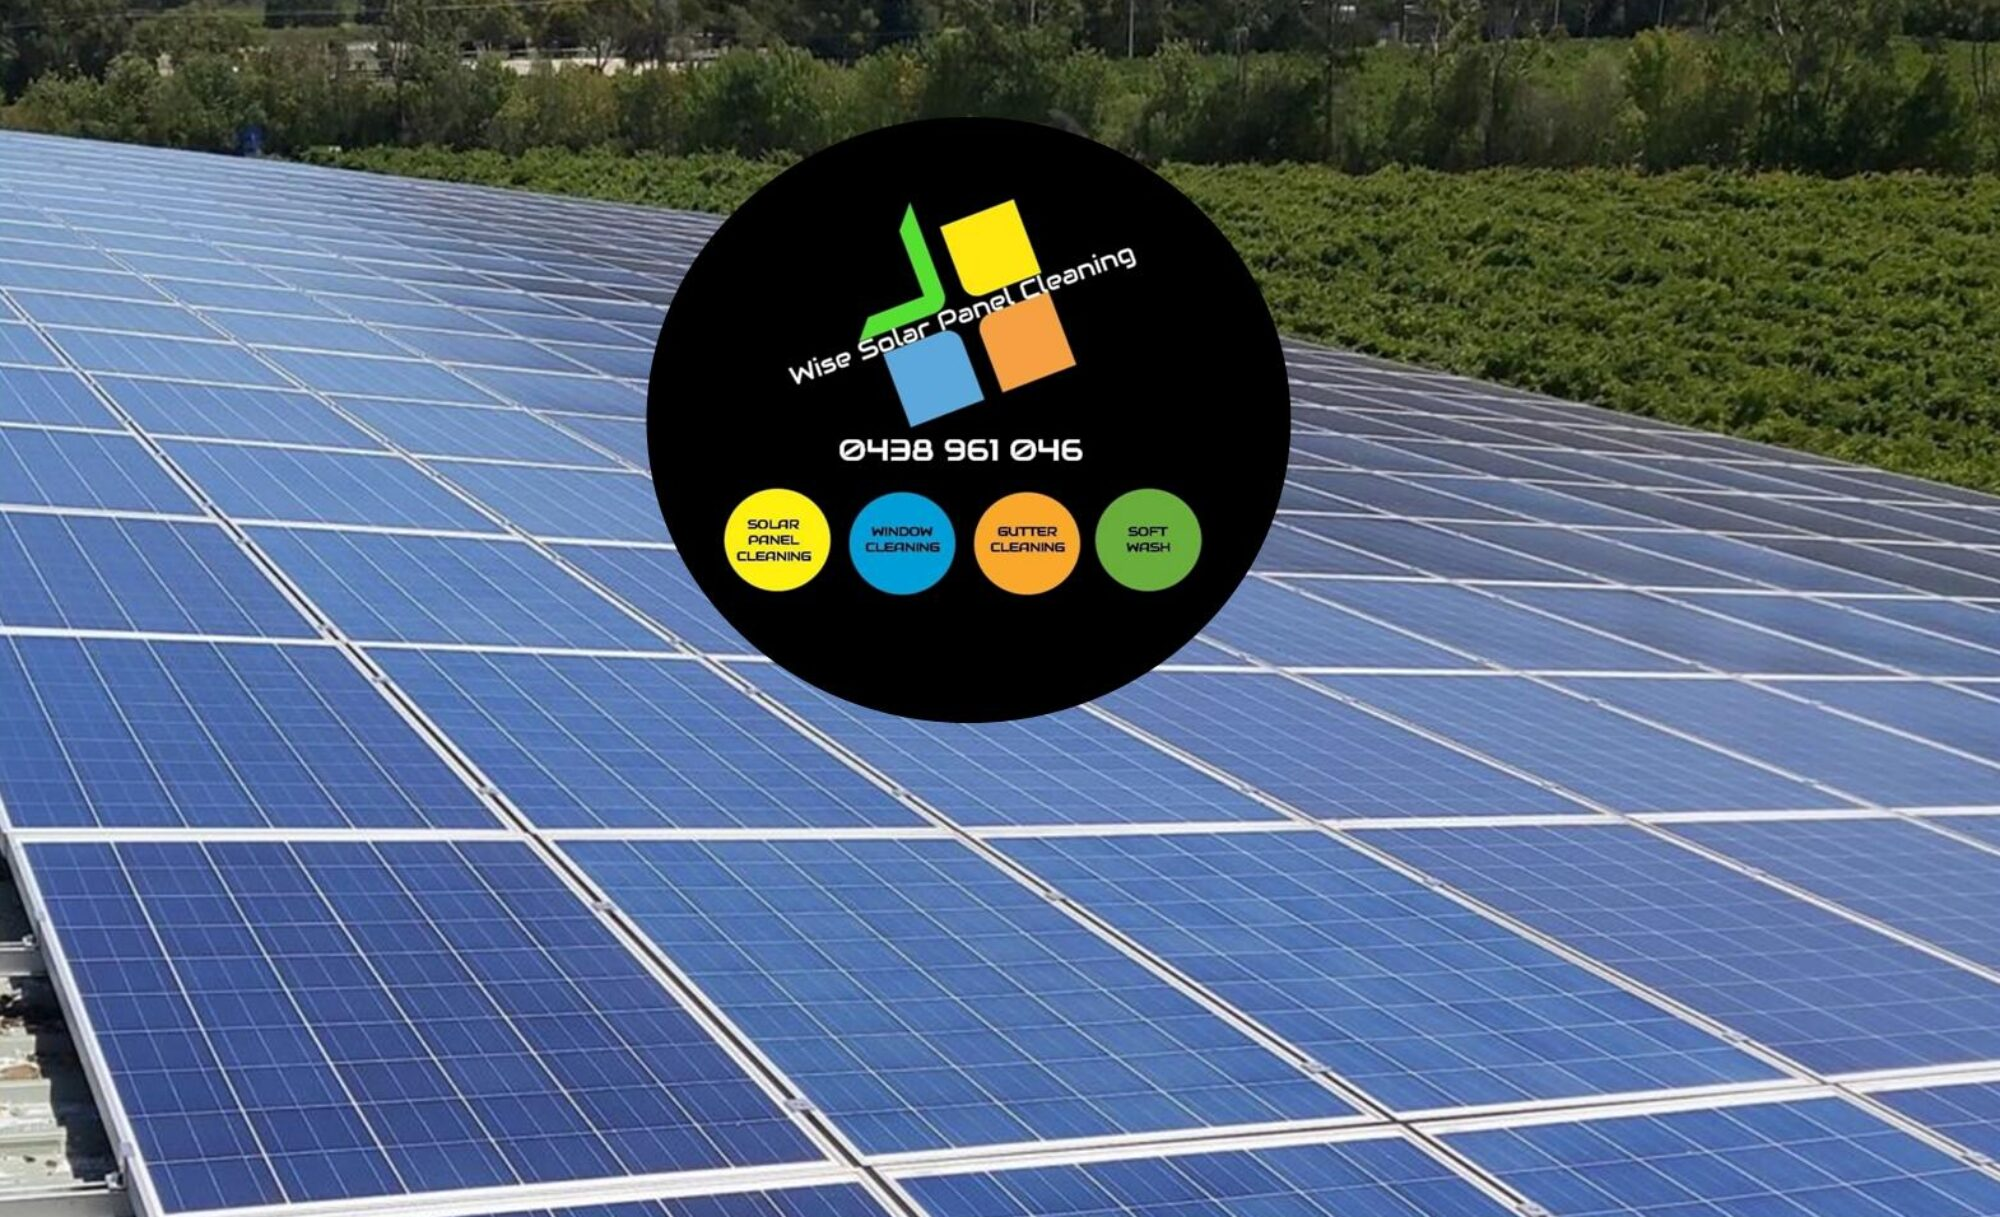 Wise Solar Panel Cleaning